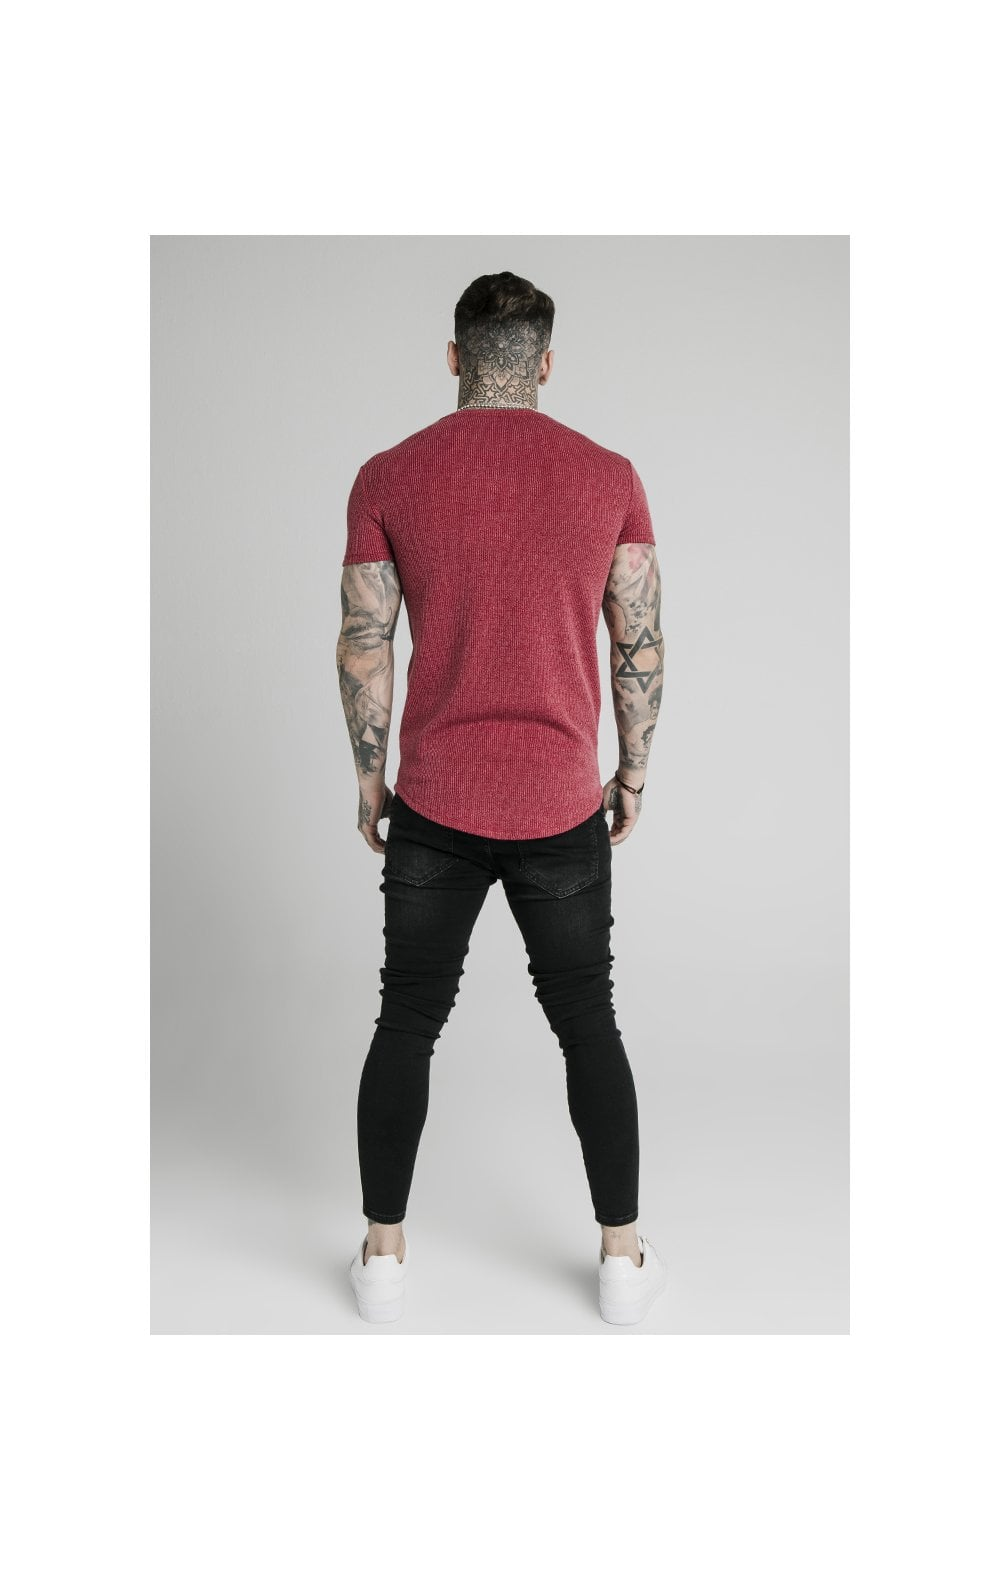 Load image into Gallery viewer, SikSilk Rib Knit Gym Tee - Red (4)